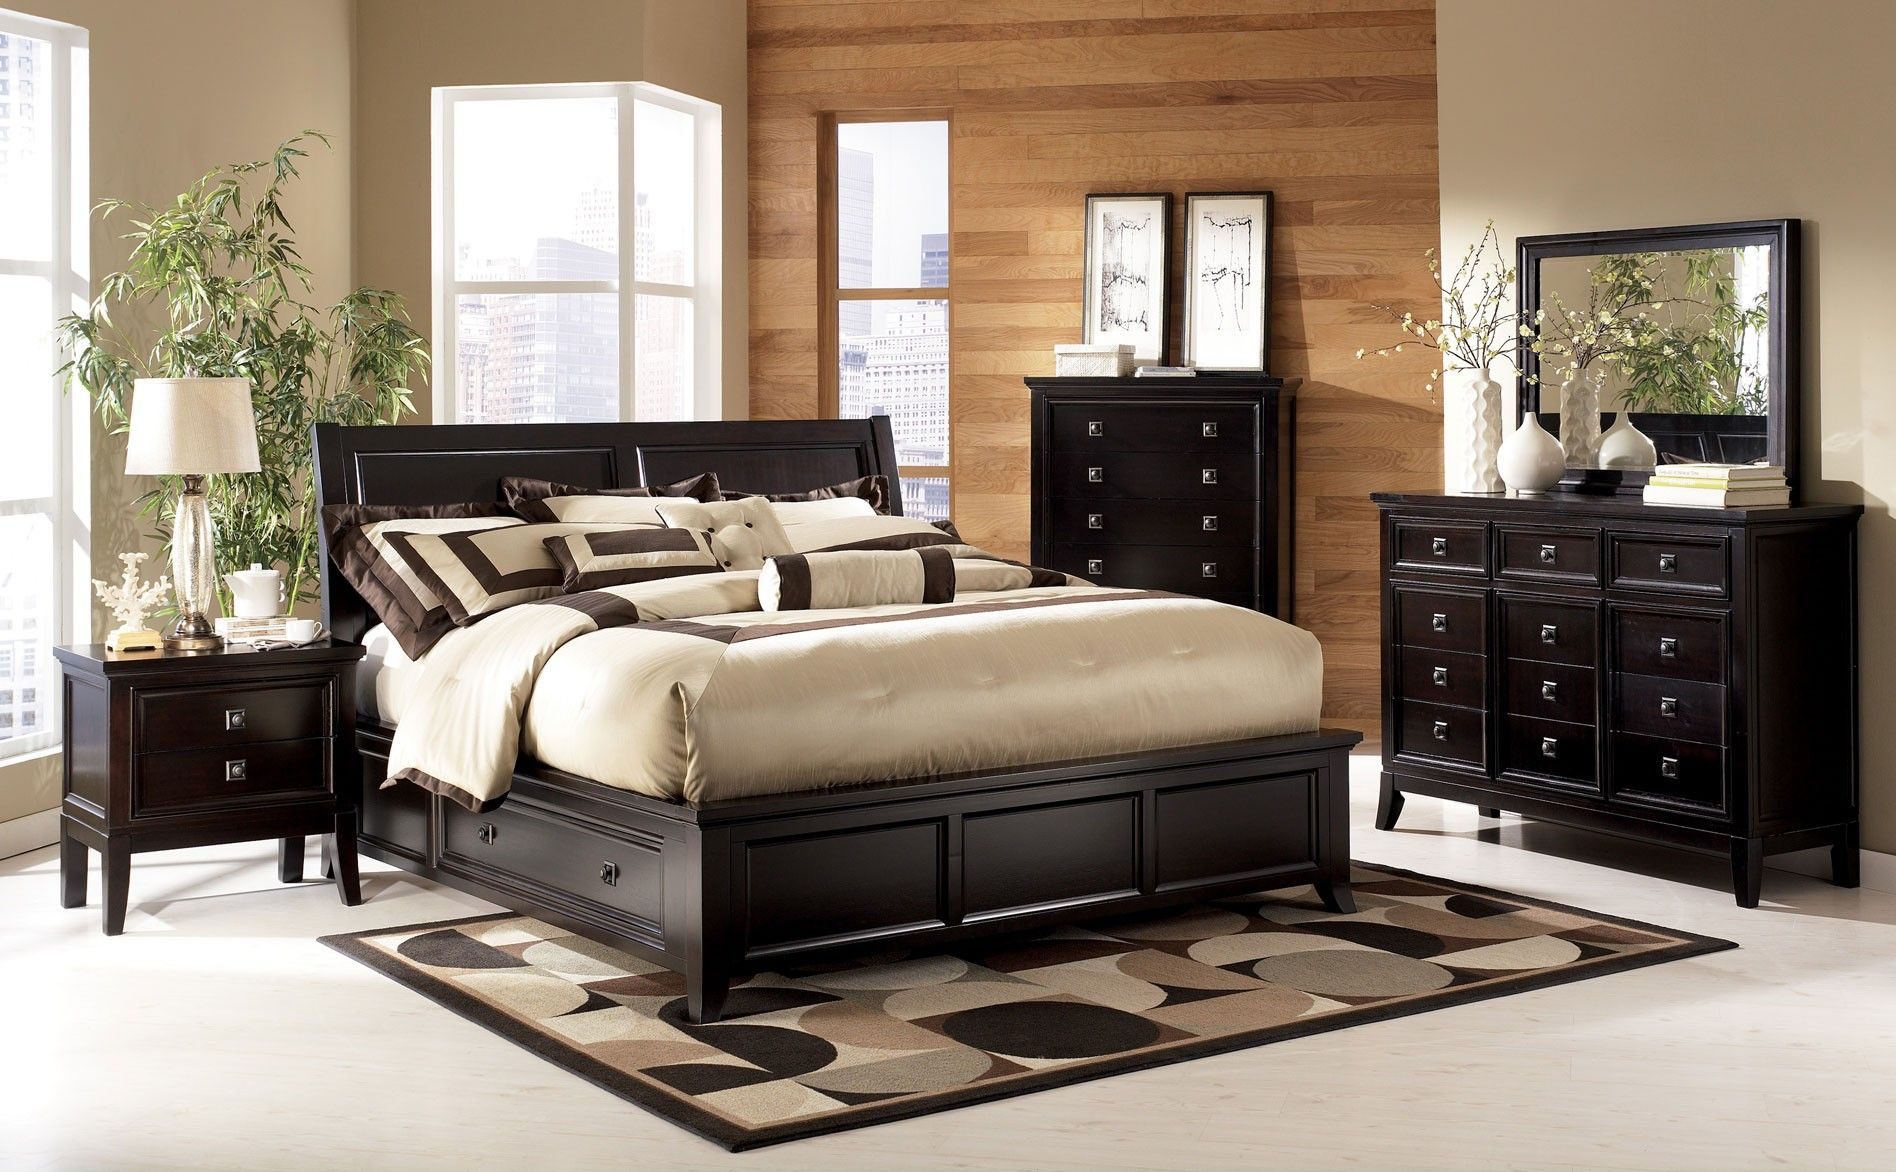 High Resolution Ashlyn Furniture  8 Ashley Furniture Martini Suite Bedroom  Set. High Resolution Ashlyn Furniture  8 Ashley Furniture Martini Suite